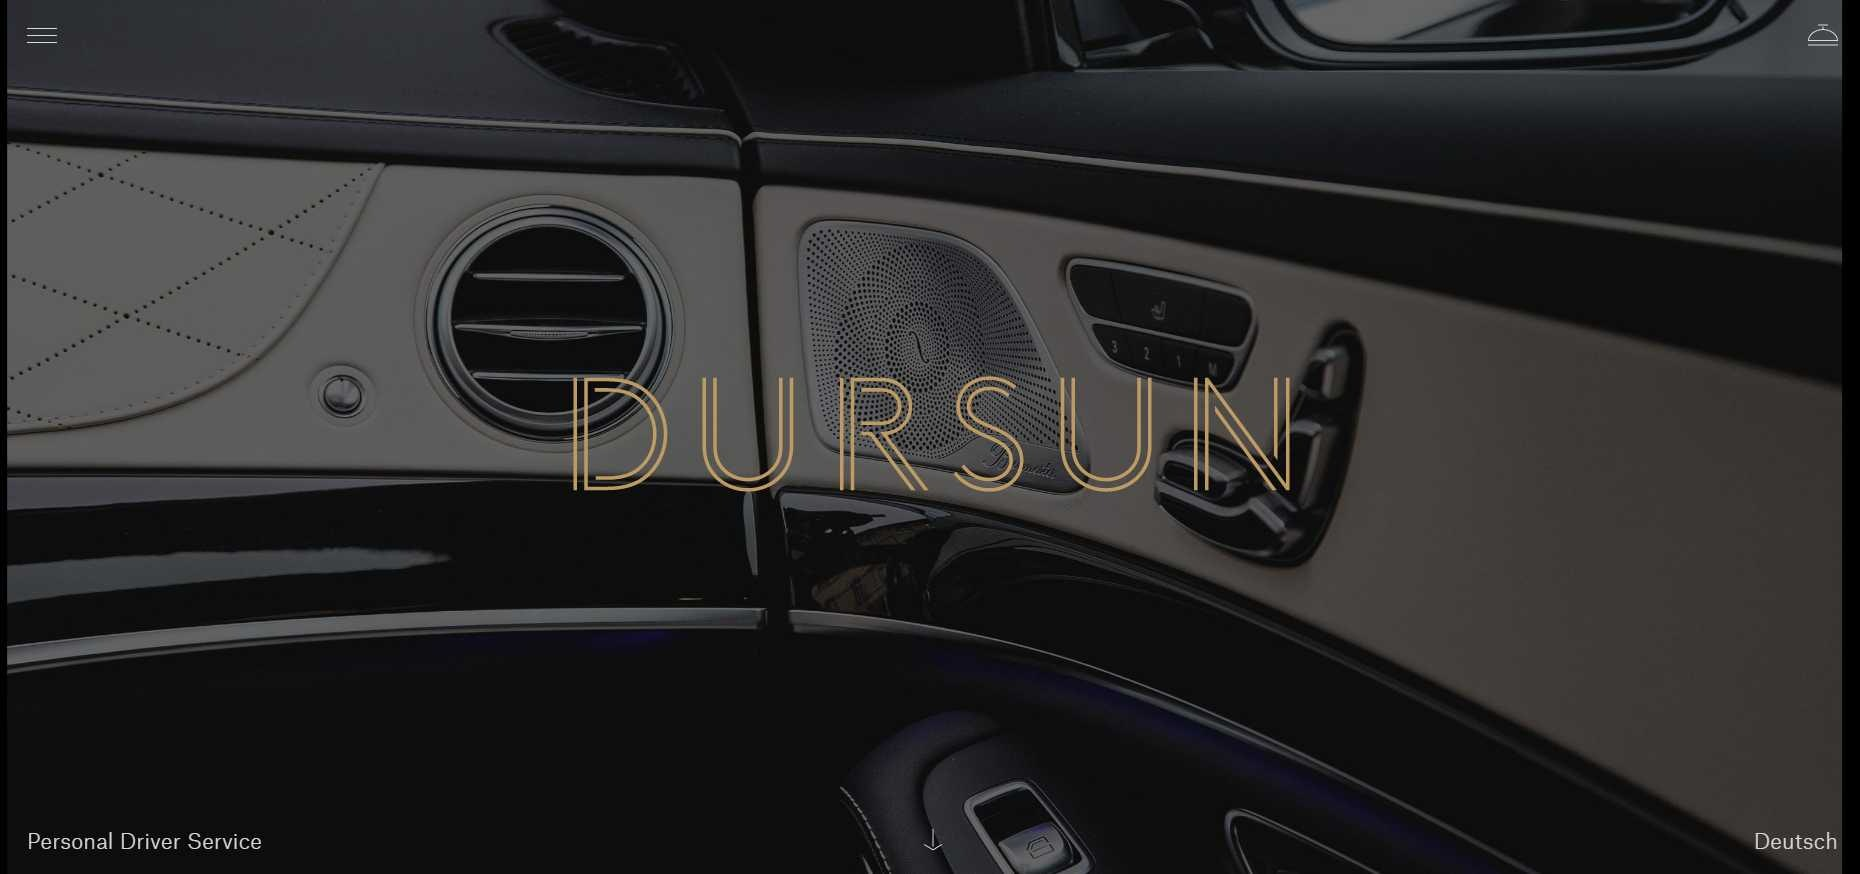 dursun website